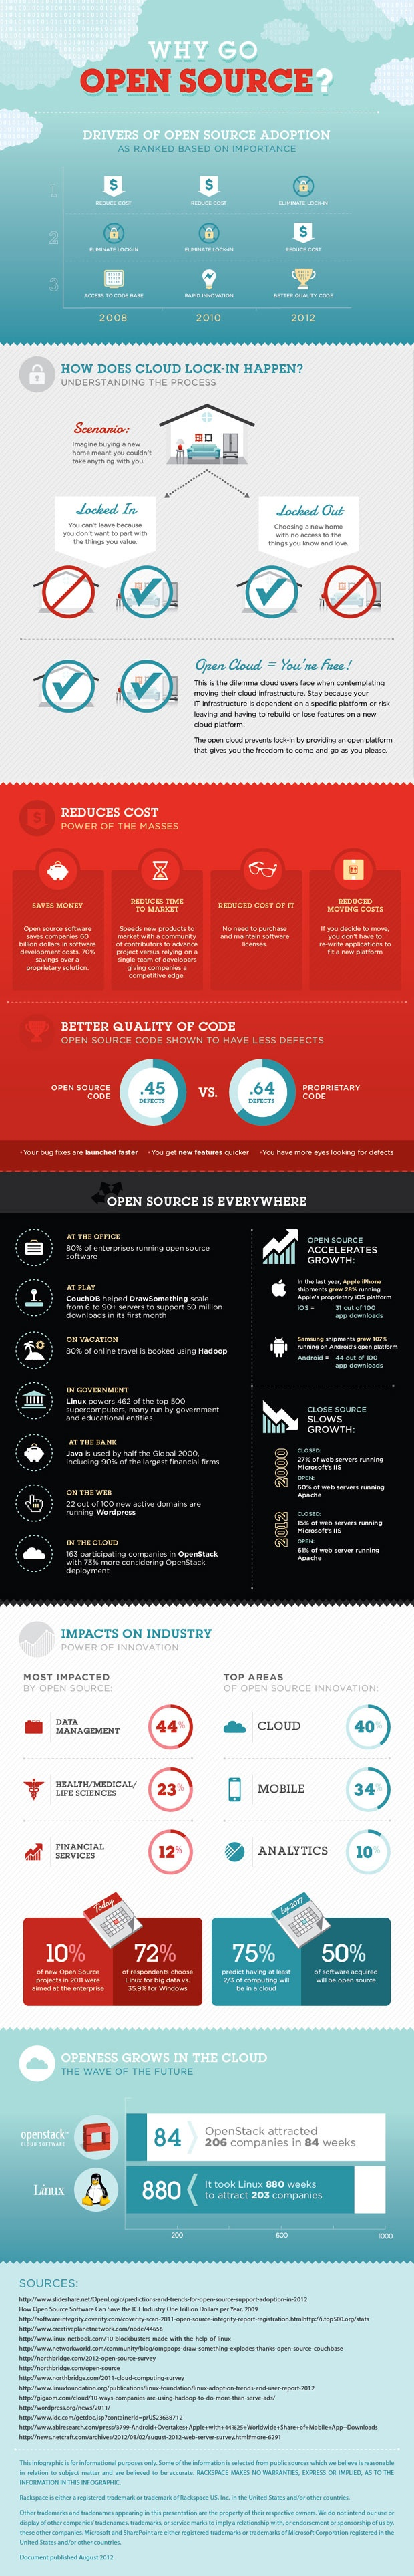 Go open source - infographic by Rackspace